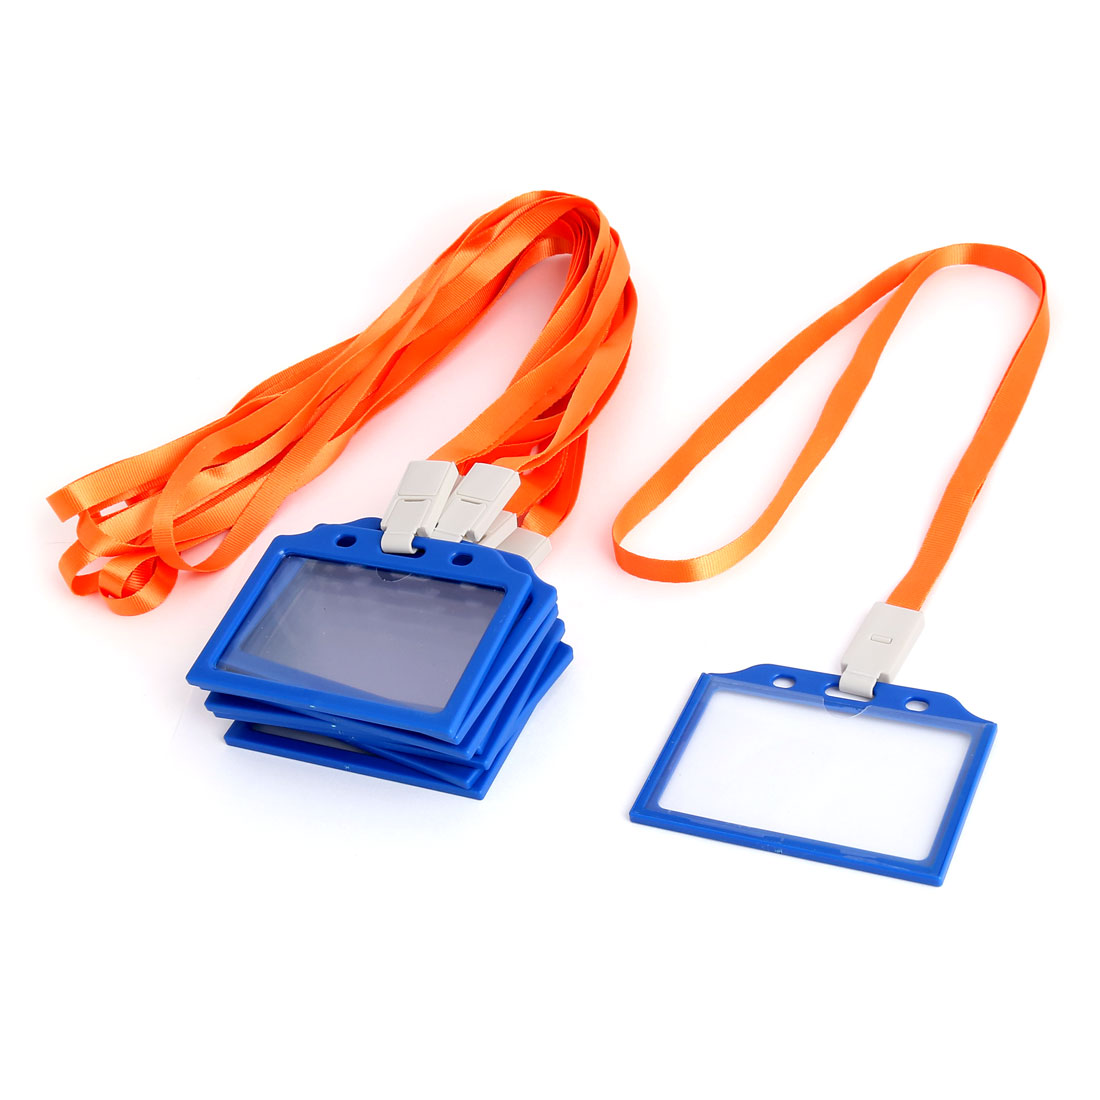 Office School Plastic Horizontal Name Tag Card Holder Orange Blue 10 Pcs